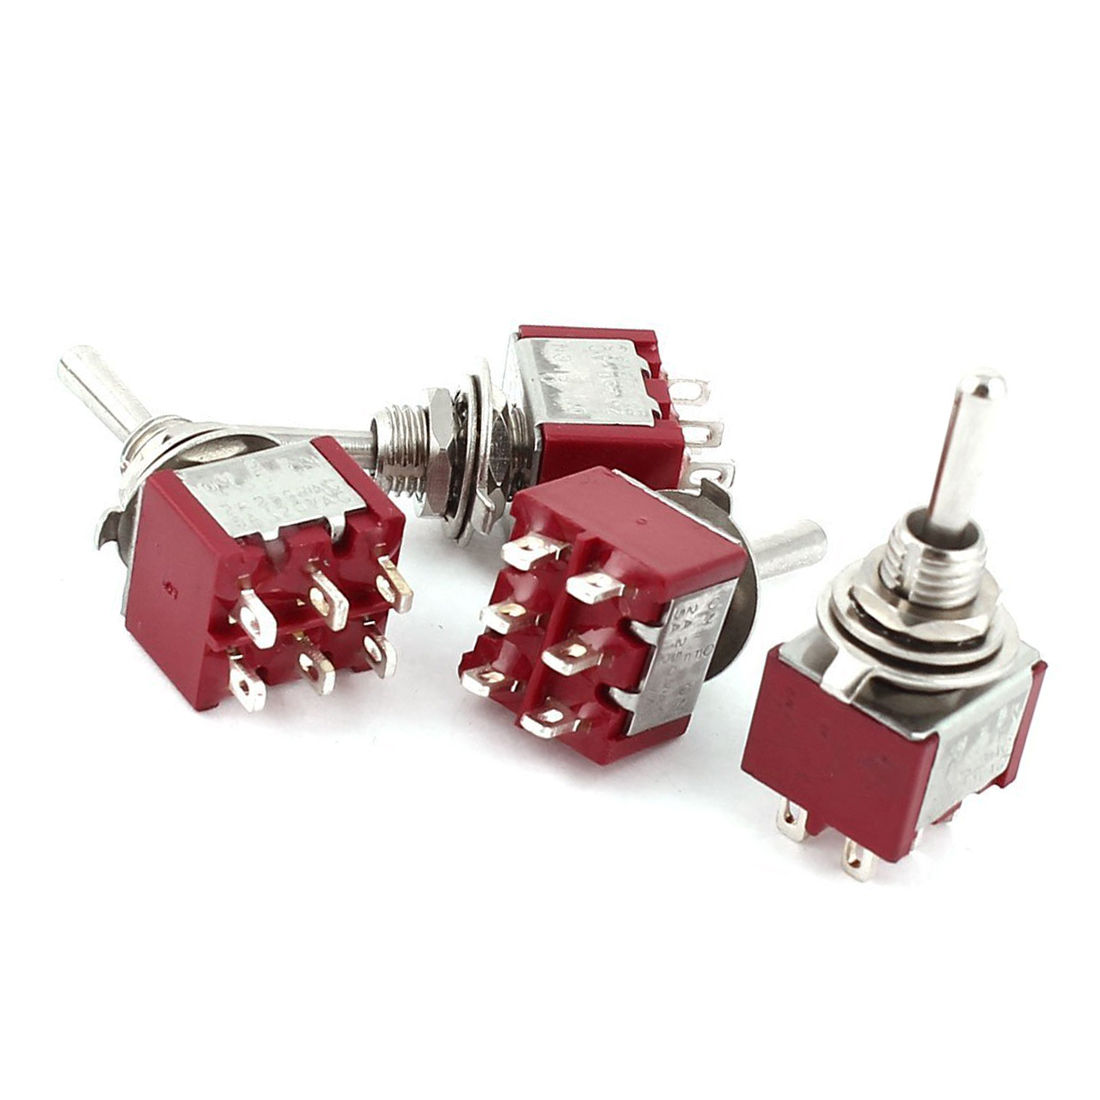 High Quality 4Pcs AC 250V 2A 120V 5A 6 Pin Terminals ON/Off/ON DPDT Toggle Switches